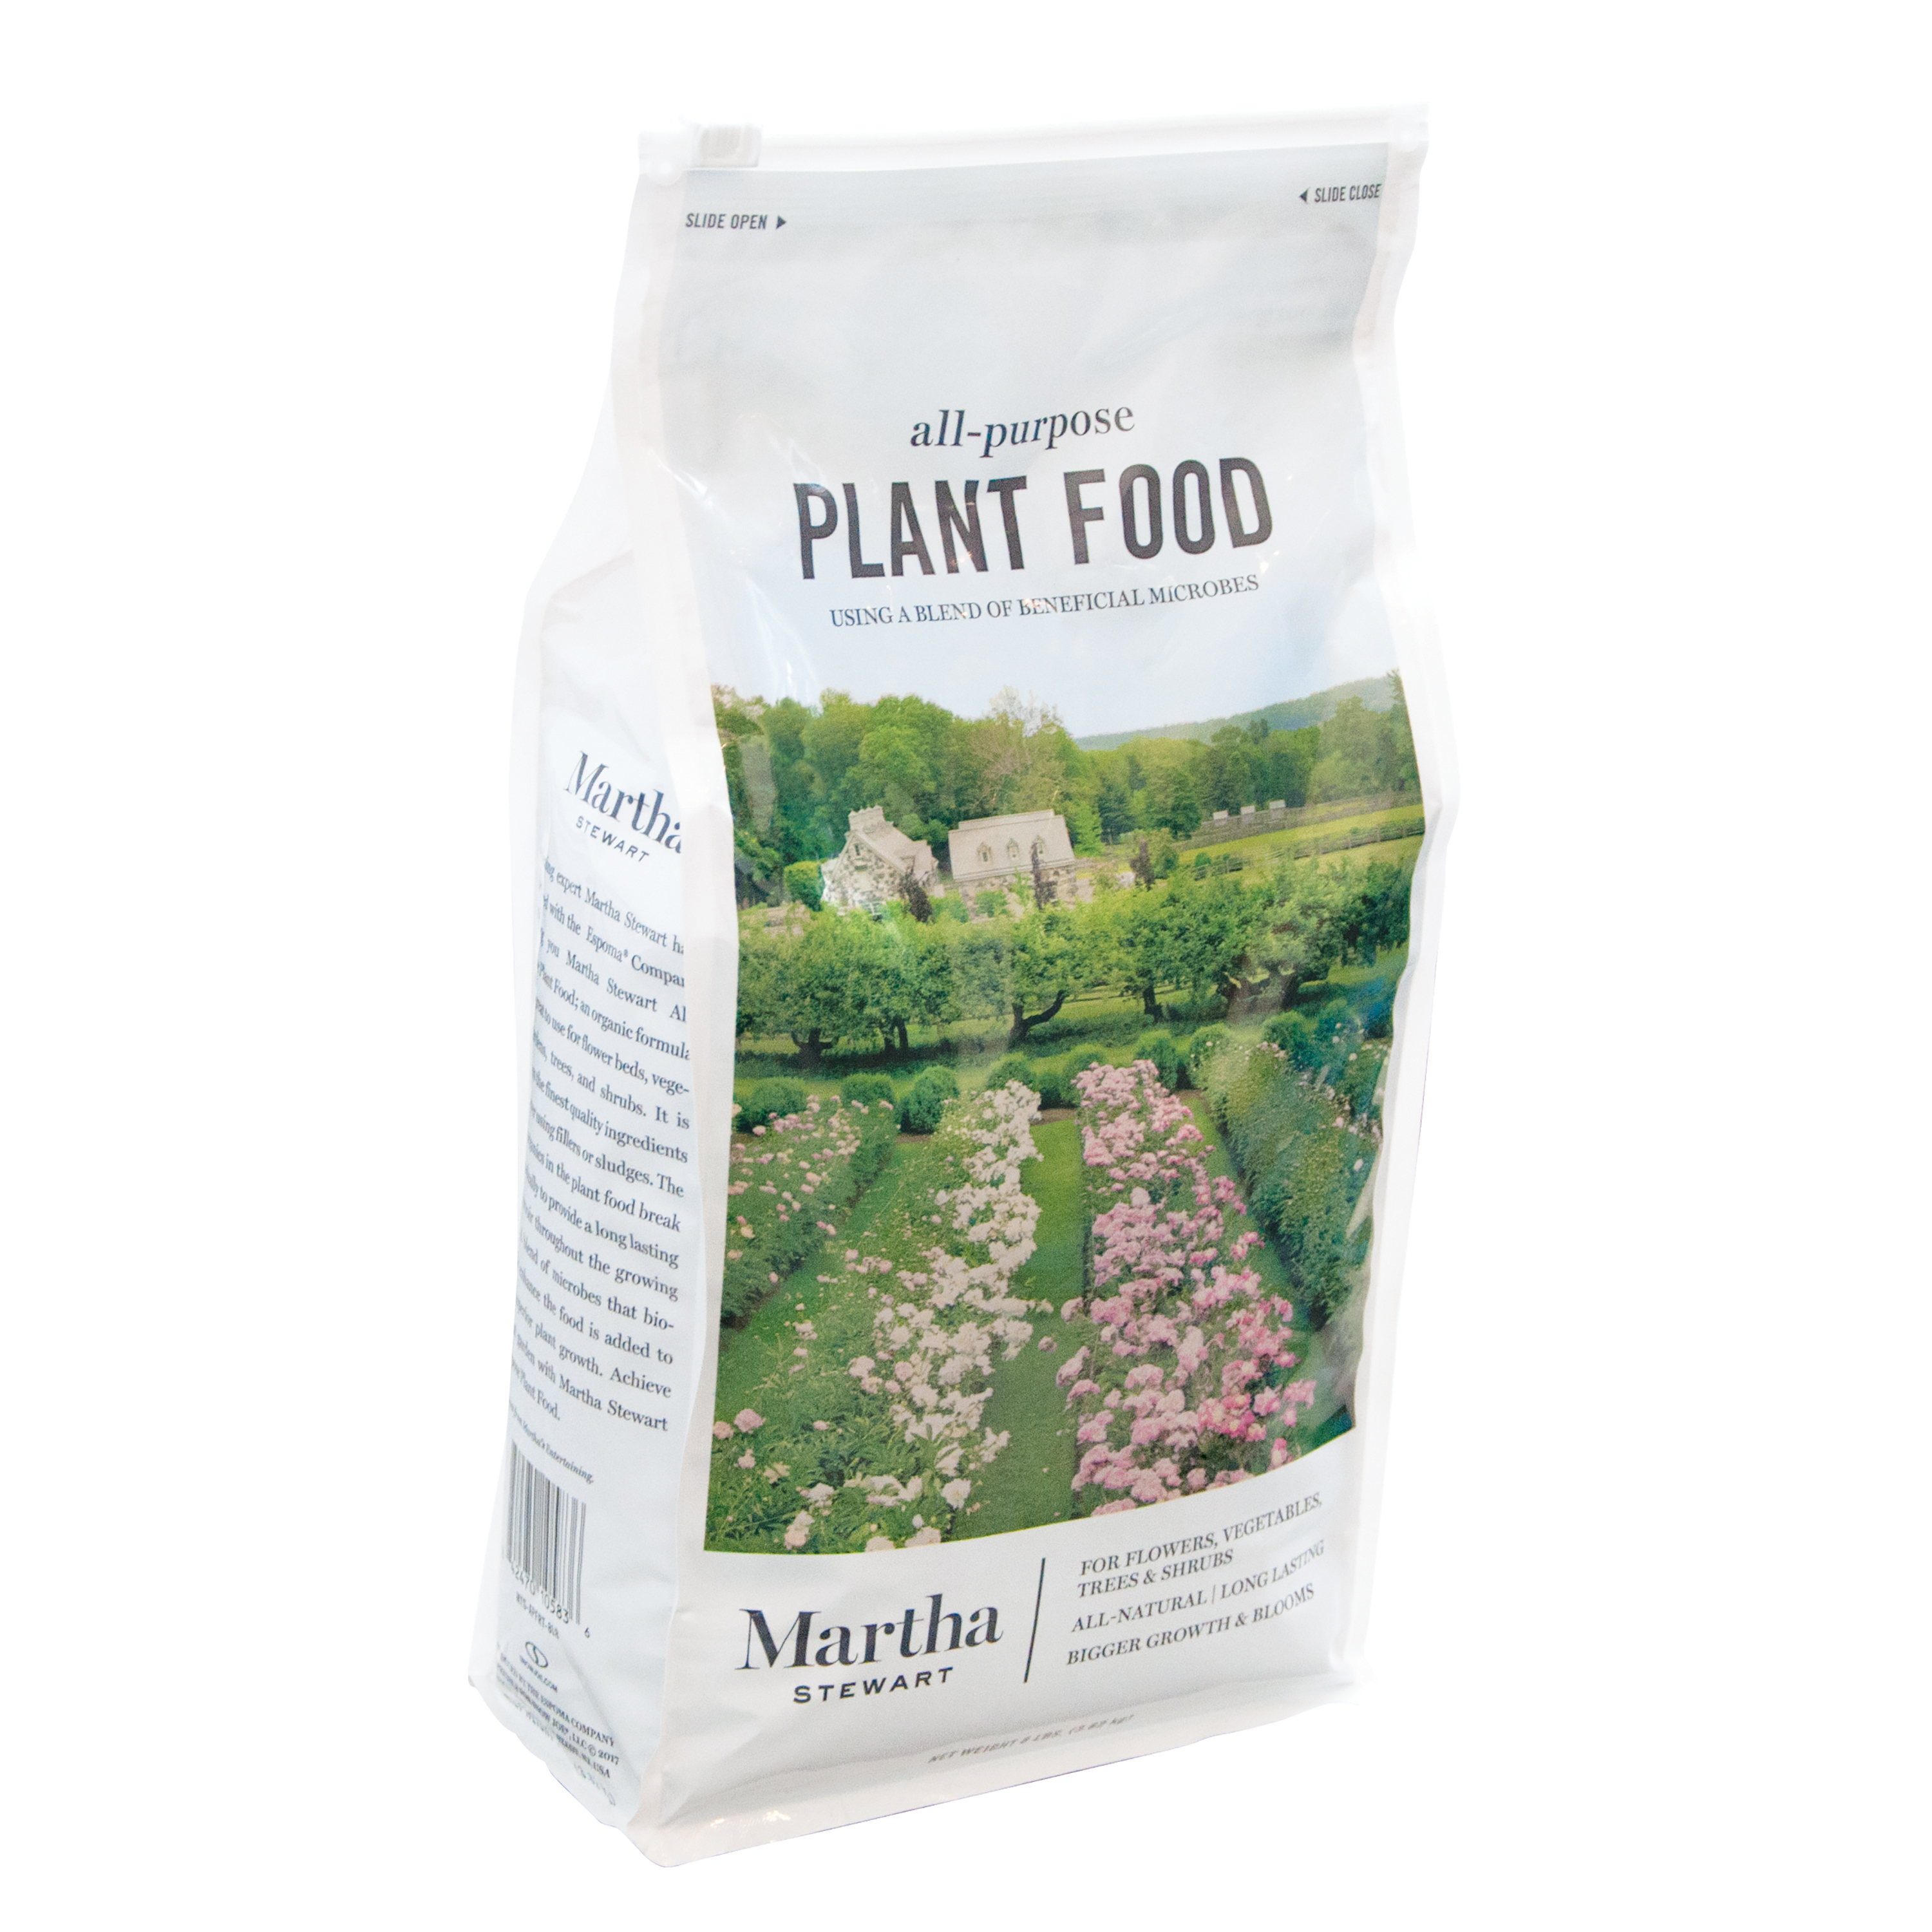 Martha Stewart MTS-APFRT-8LB All Purpose Plant Food for Flowers, Shrubs, and Vegetables